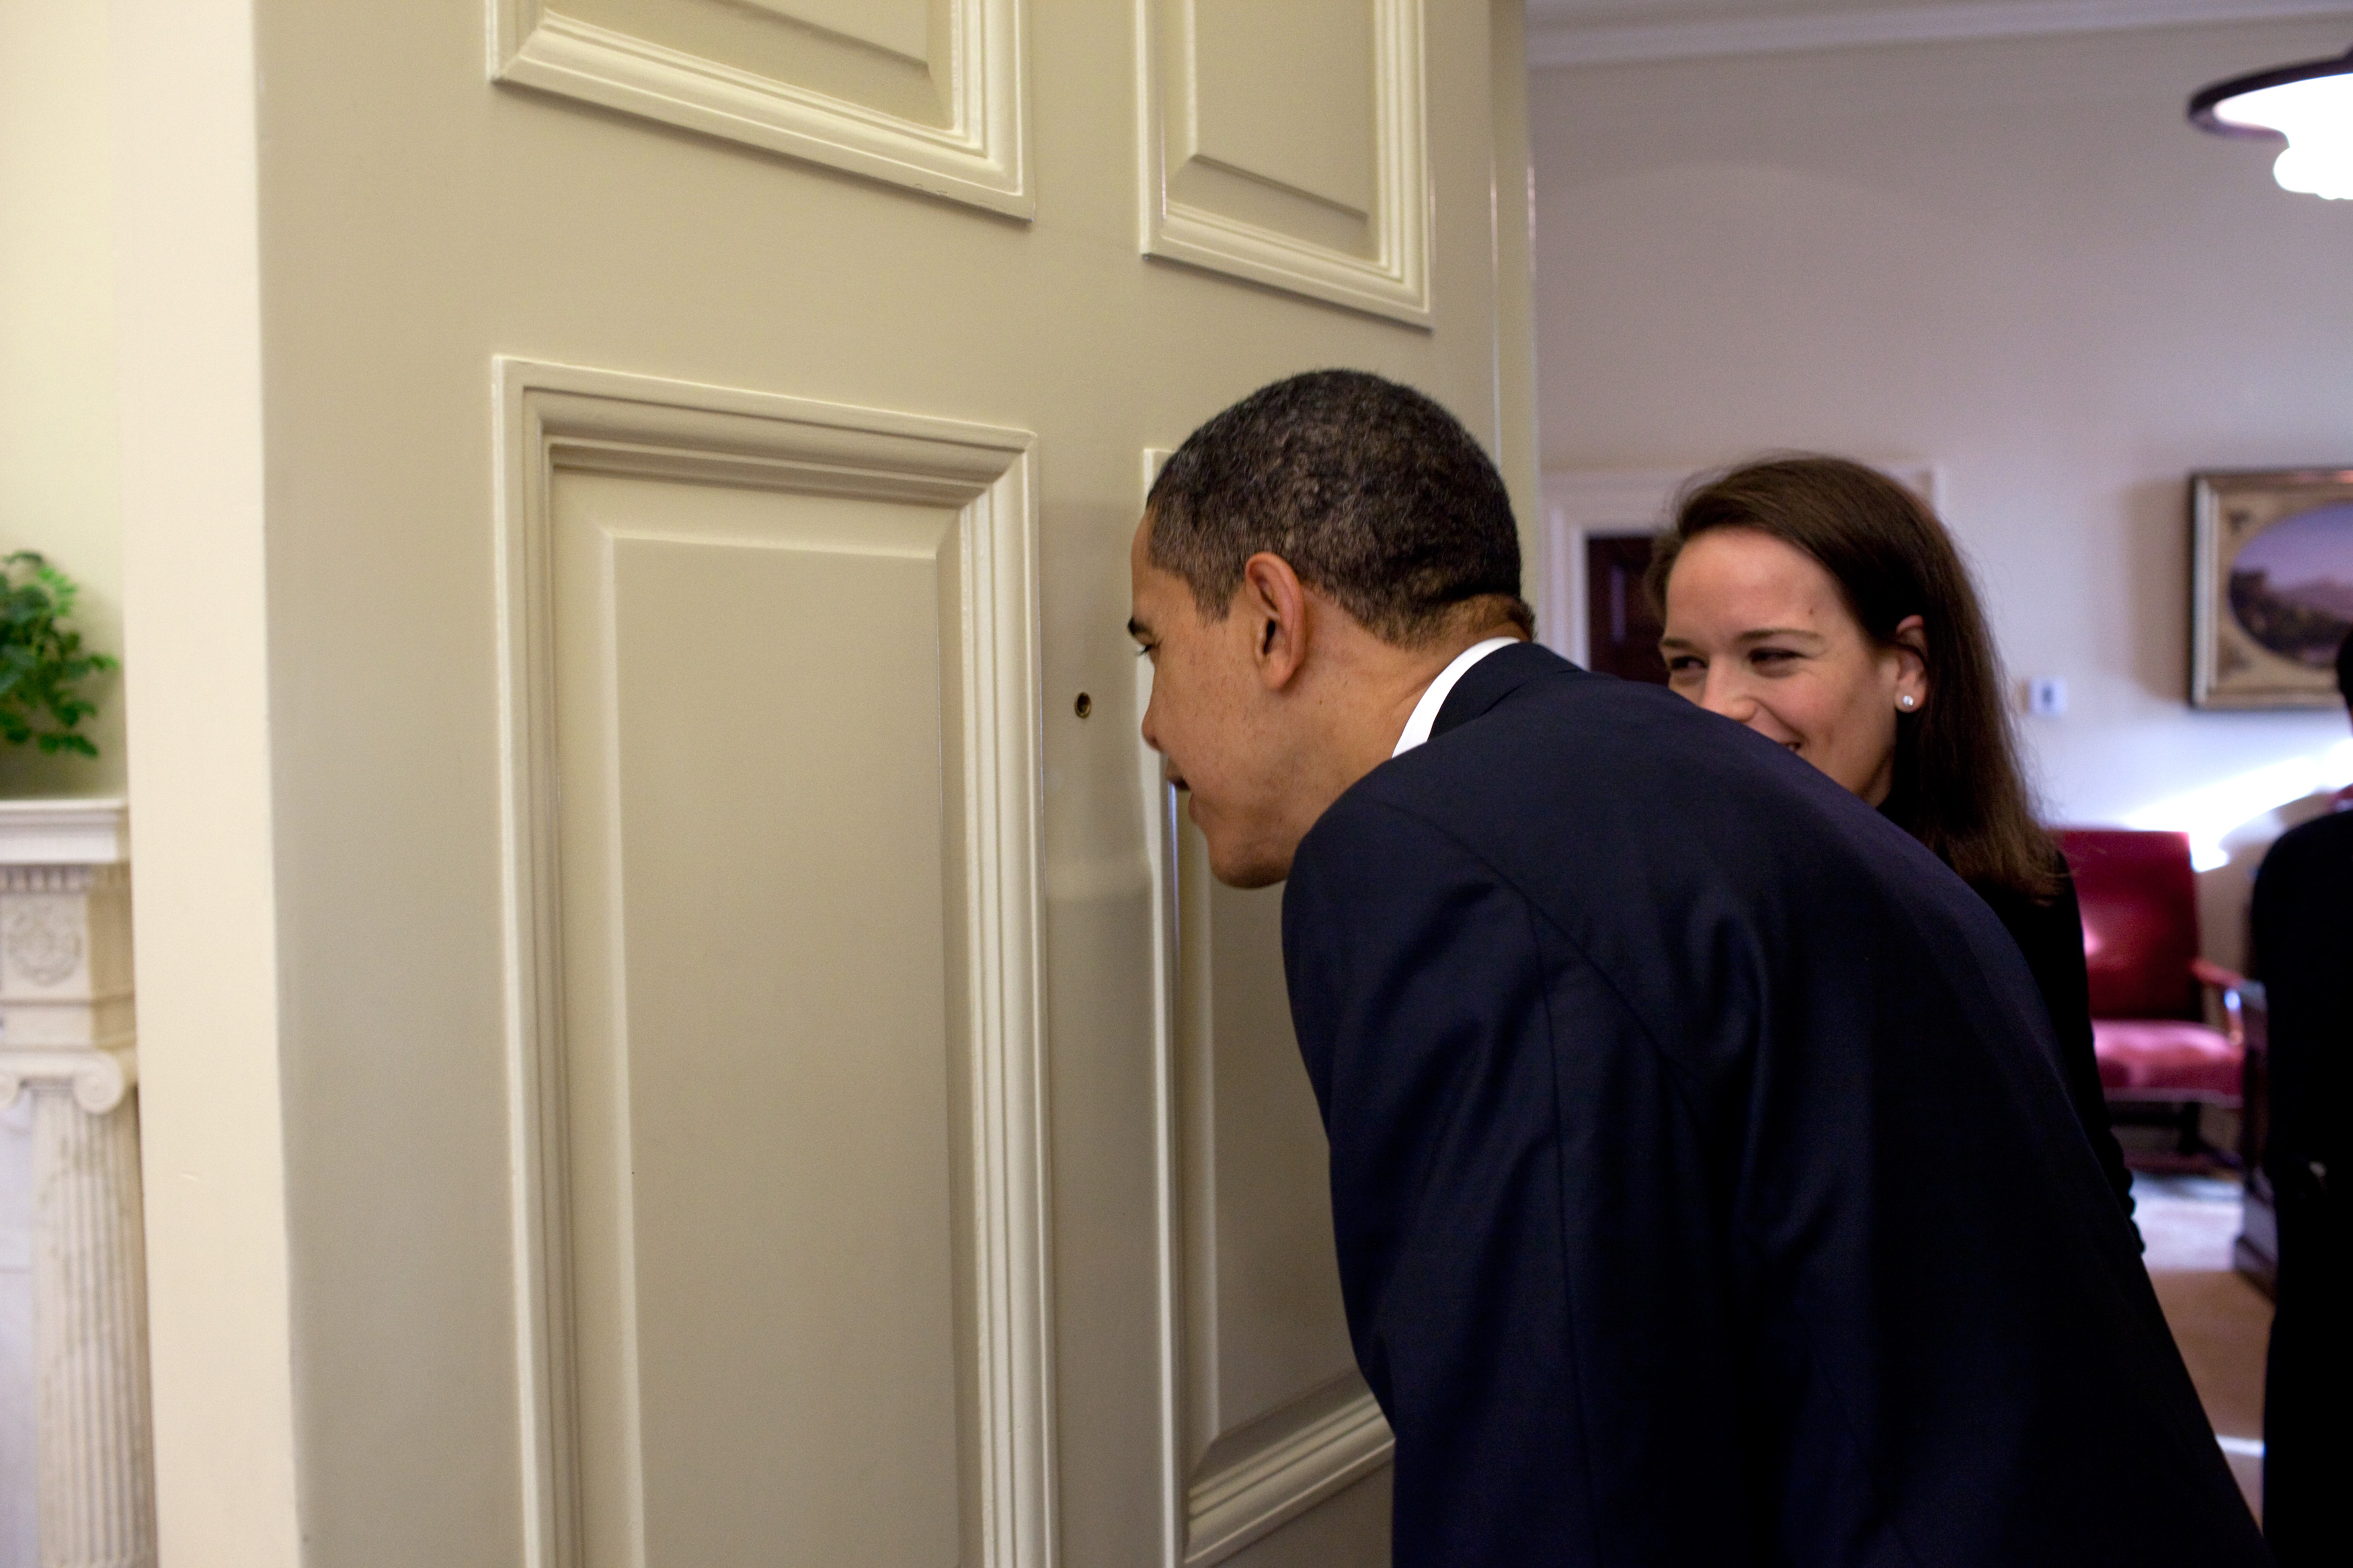 President Barack Obama looks through the Oval Office door peephole as his personal secretary Katie Johnson watches 3/12/09. Official White House Photo by Pete Souza